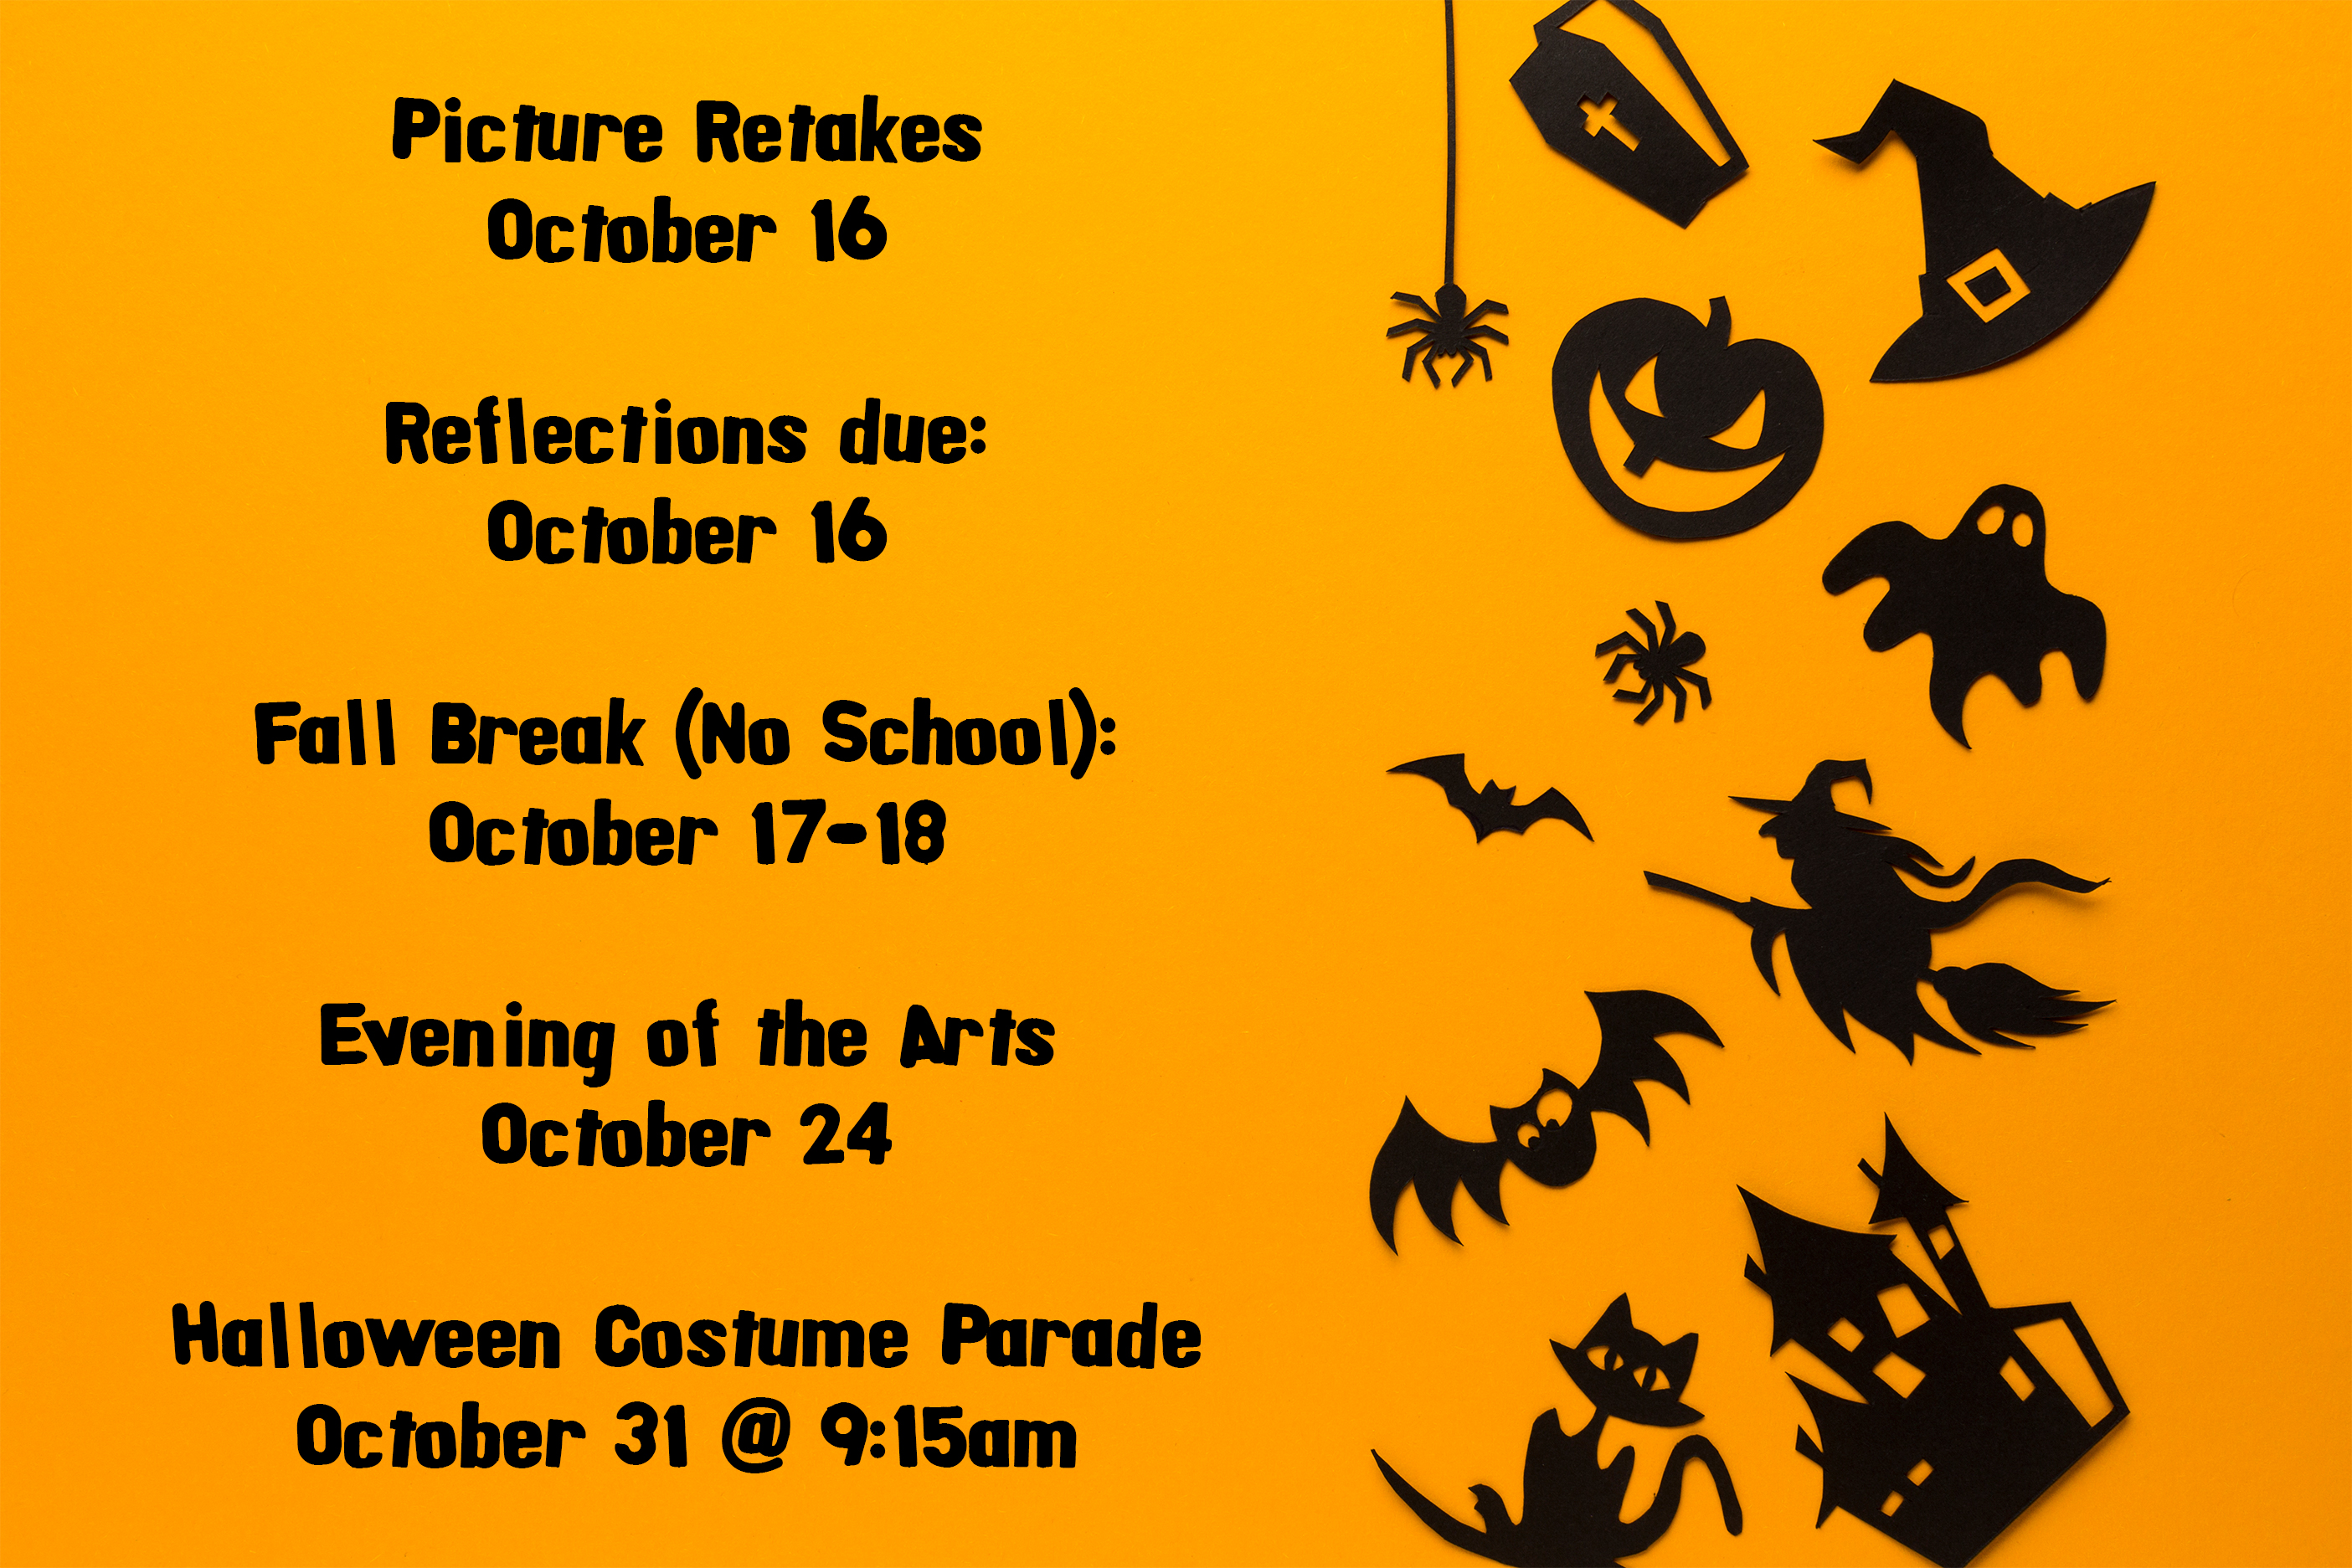 Halloween Background with the following text written in black: Picture Retakes October 16 Reflections due: October 16 Fall Break (No School): October 17-18 Evening of the Arts October 24 Halloween Costume Parade October 31 @ 9:15am